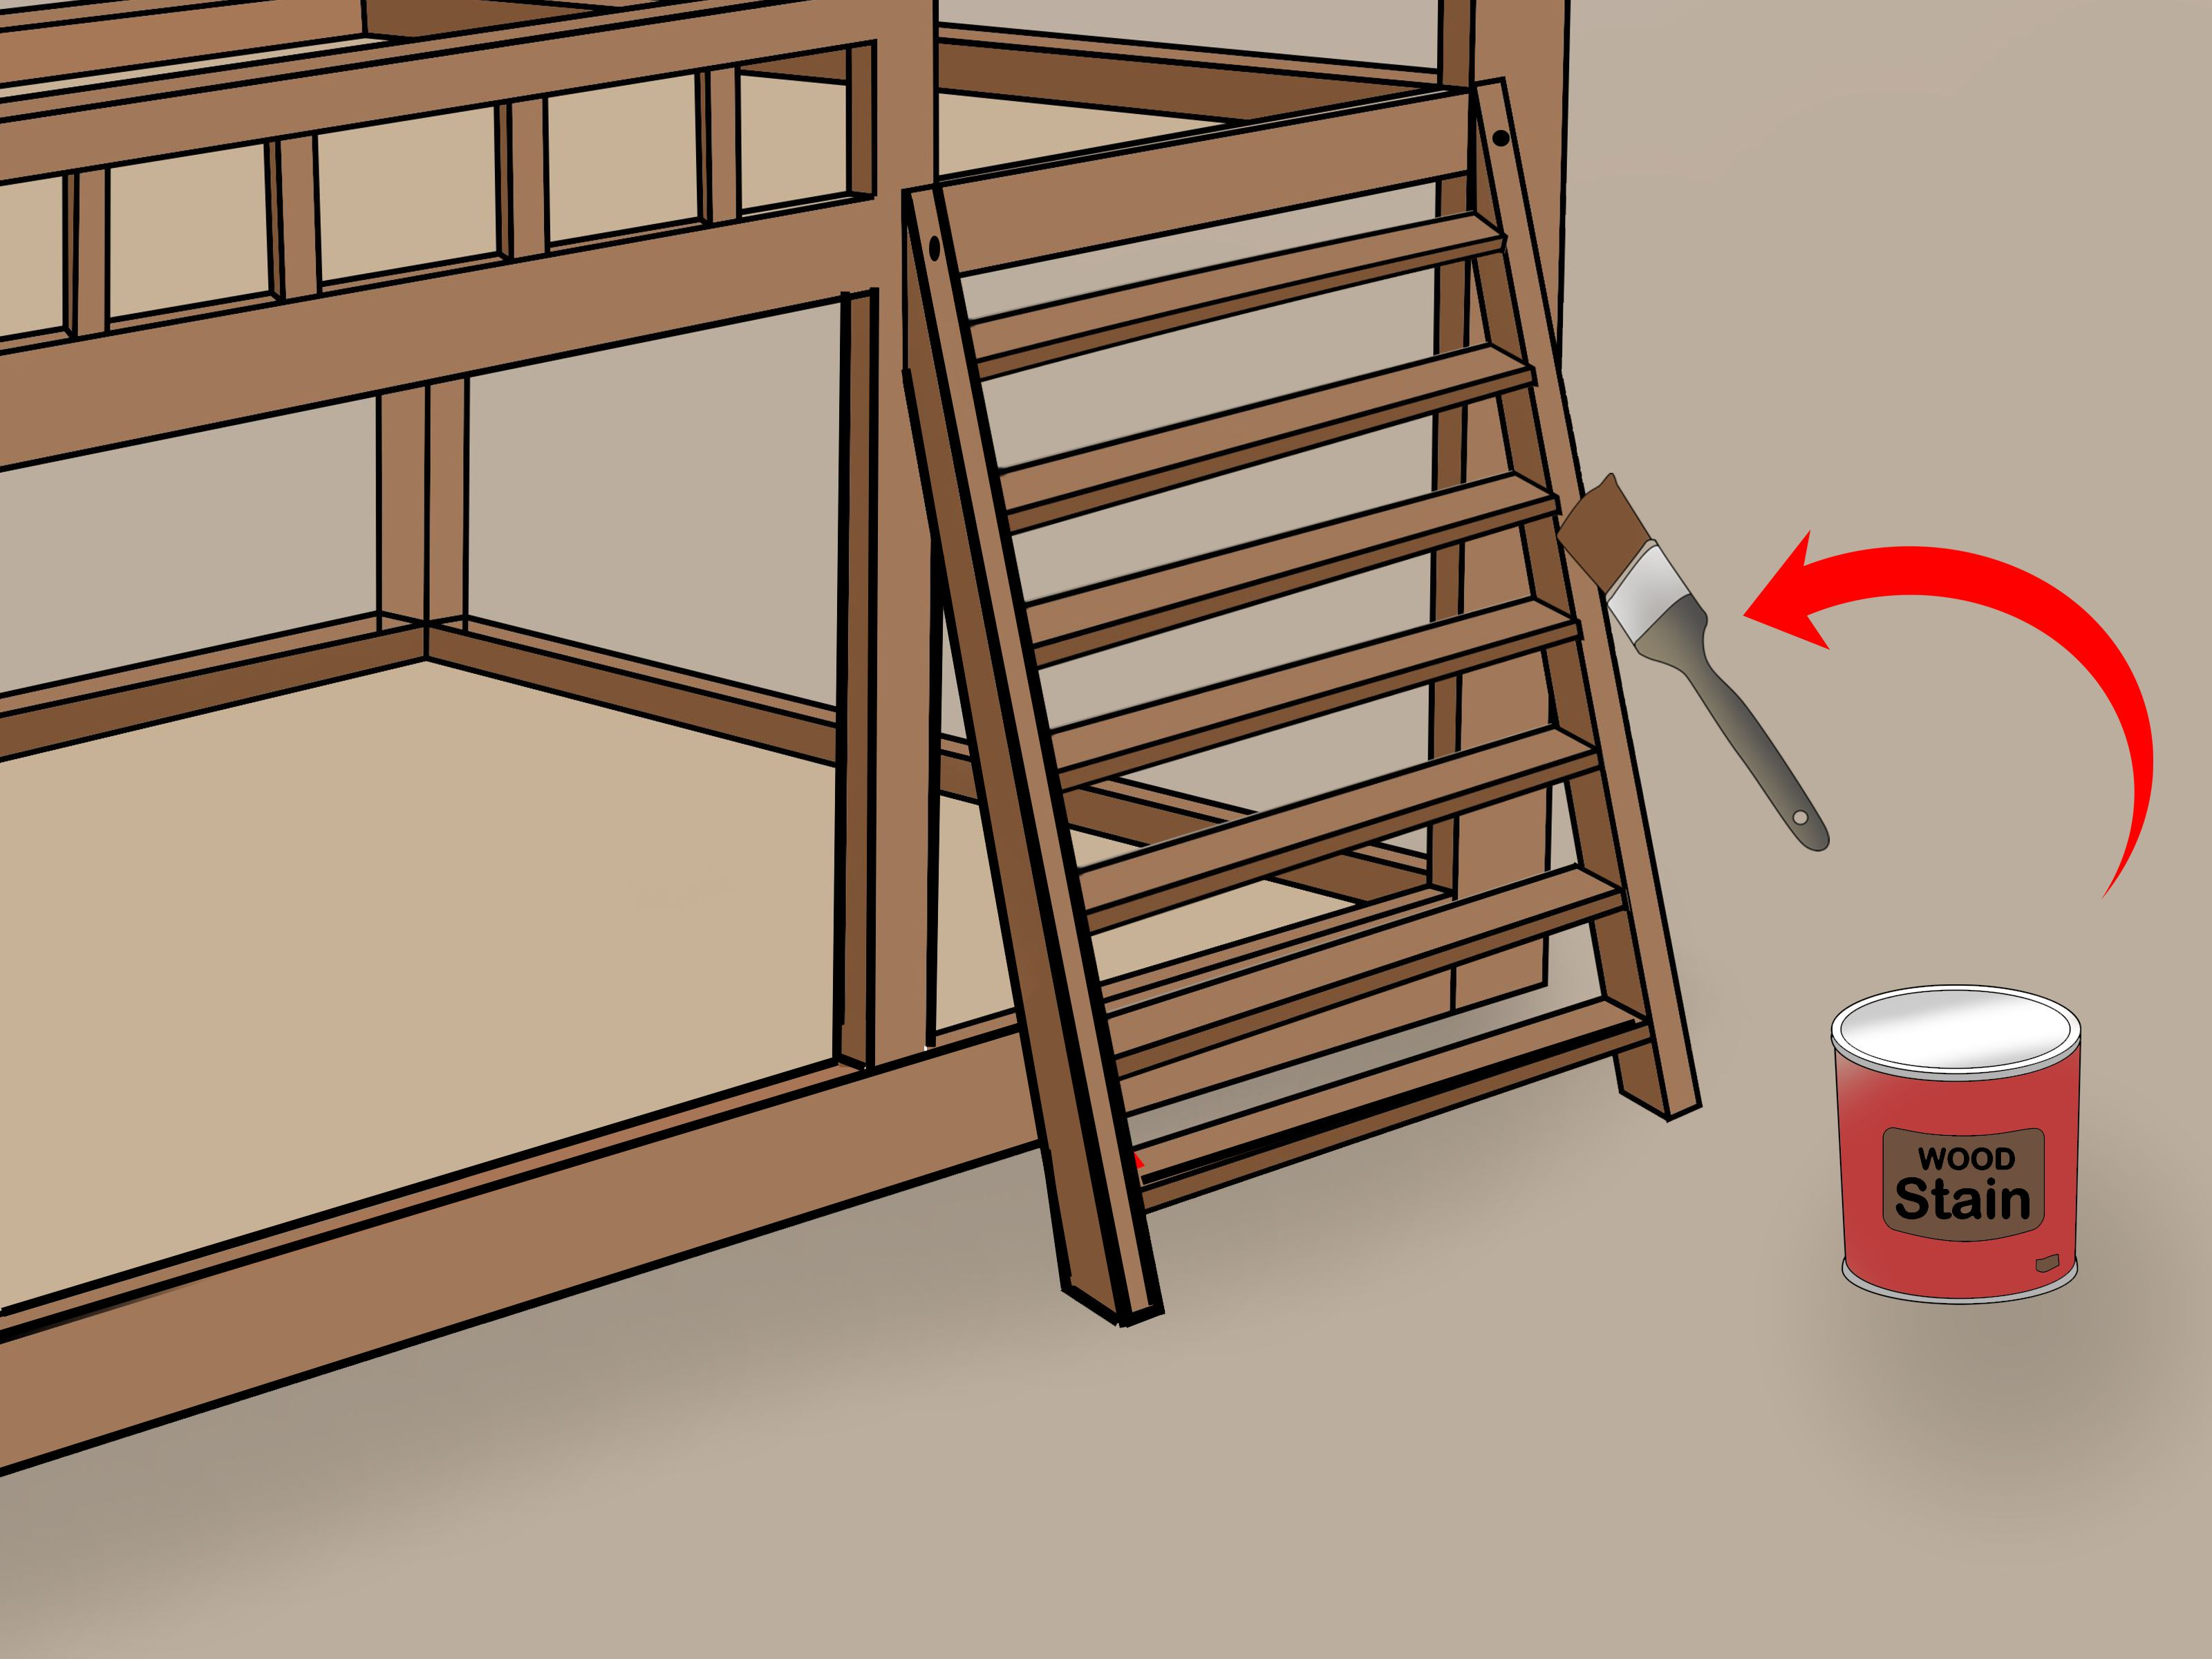 Building A Bunk Bed With Stairs How To Build Bunk Bed Stairs With Pictures Wikihow